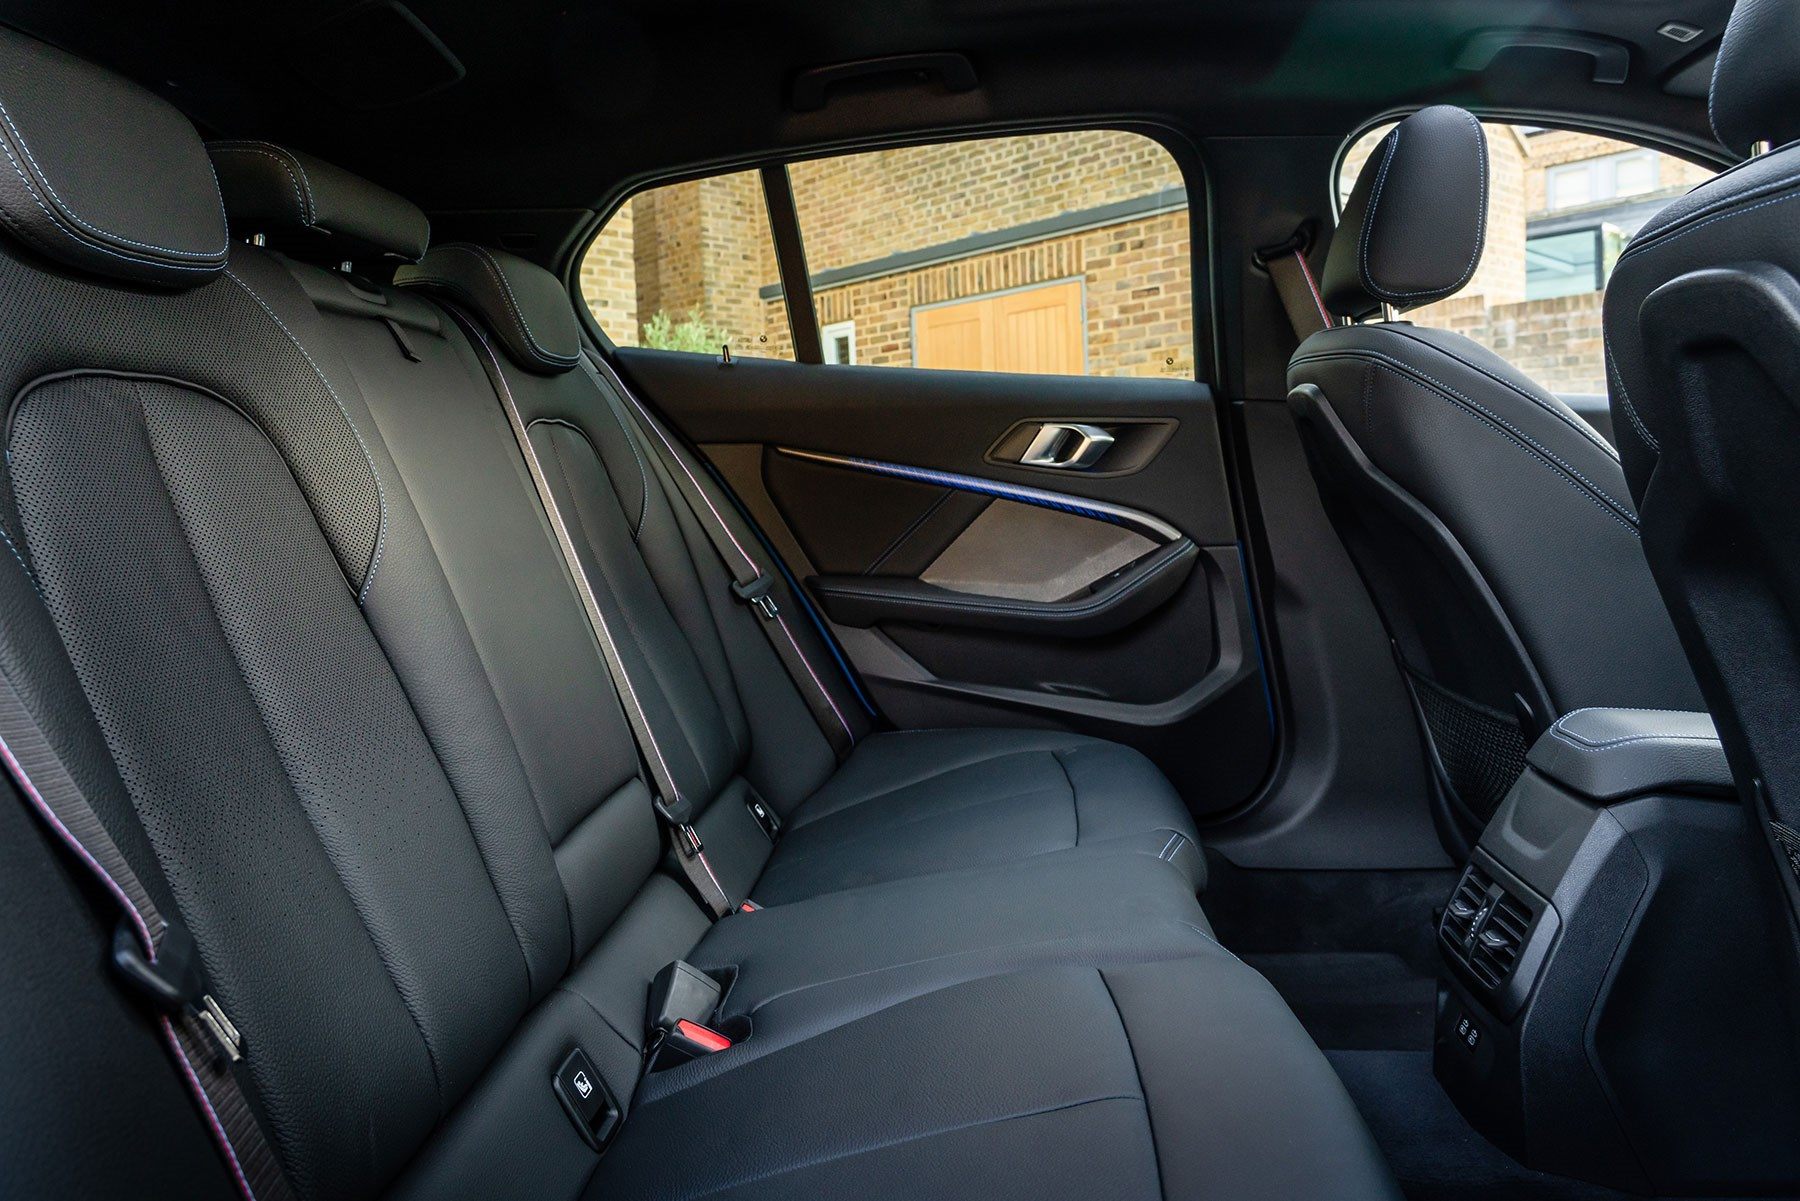 BMW 1-series rear seats: more space than before, but still quite a tight fit